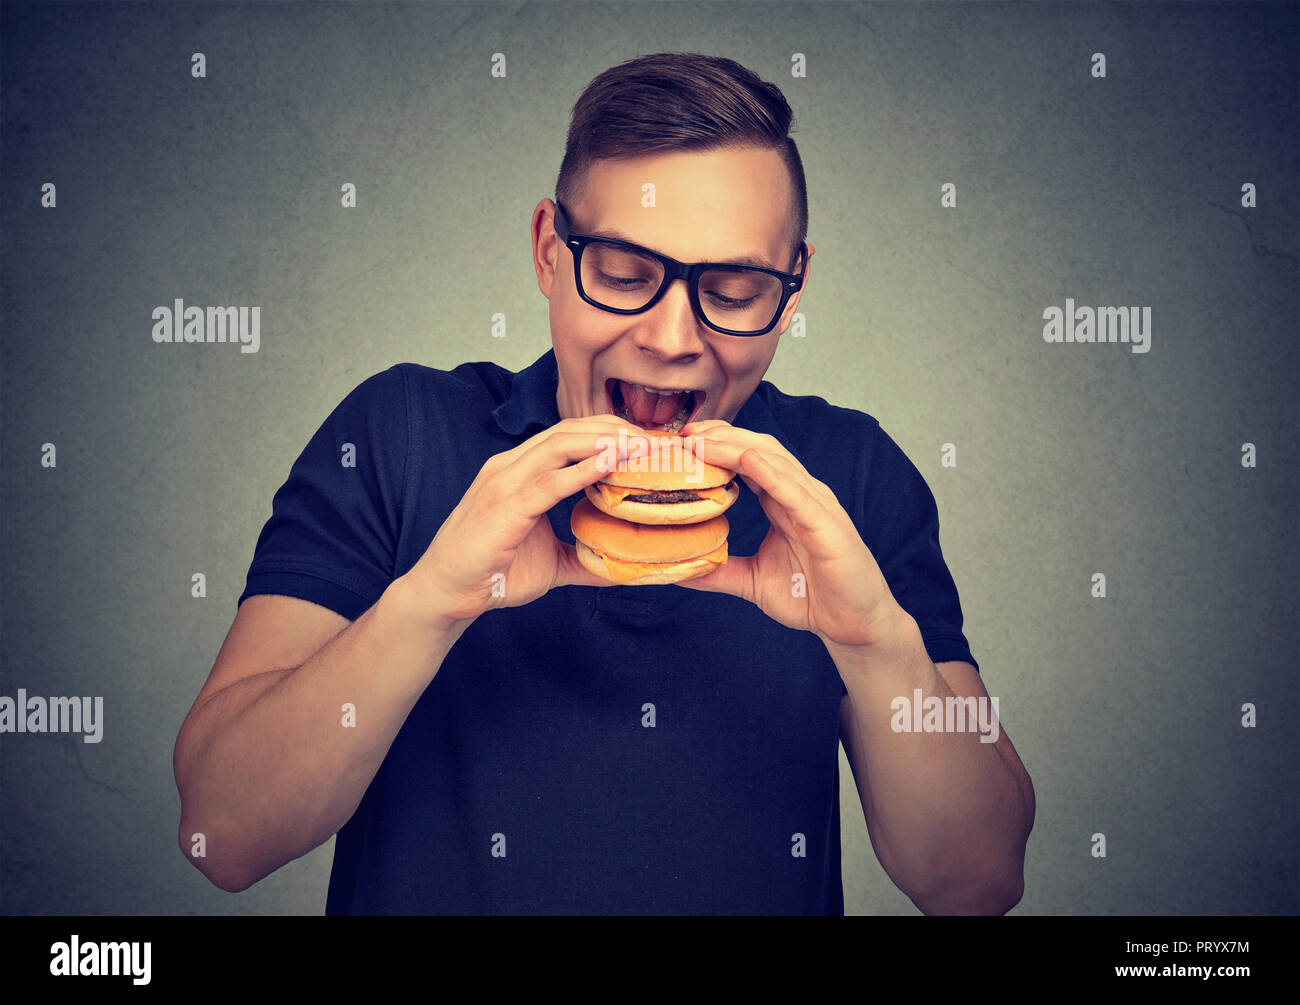 Casual man in glasses excited with double cheeseburger while starving and craving for fast food - Stock Image